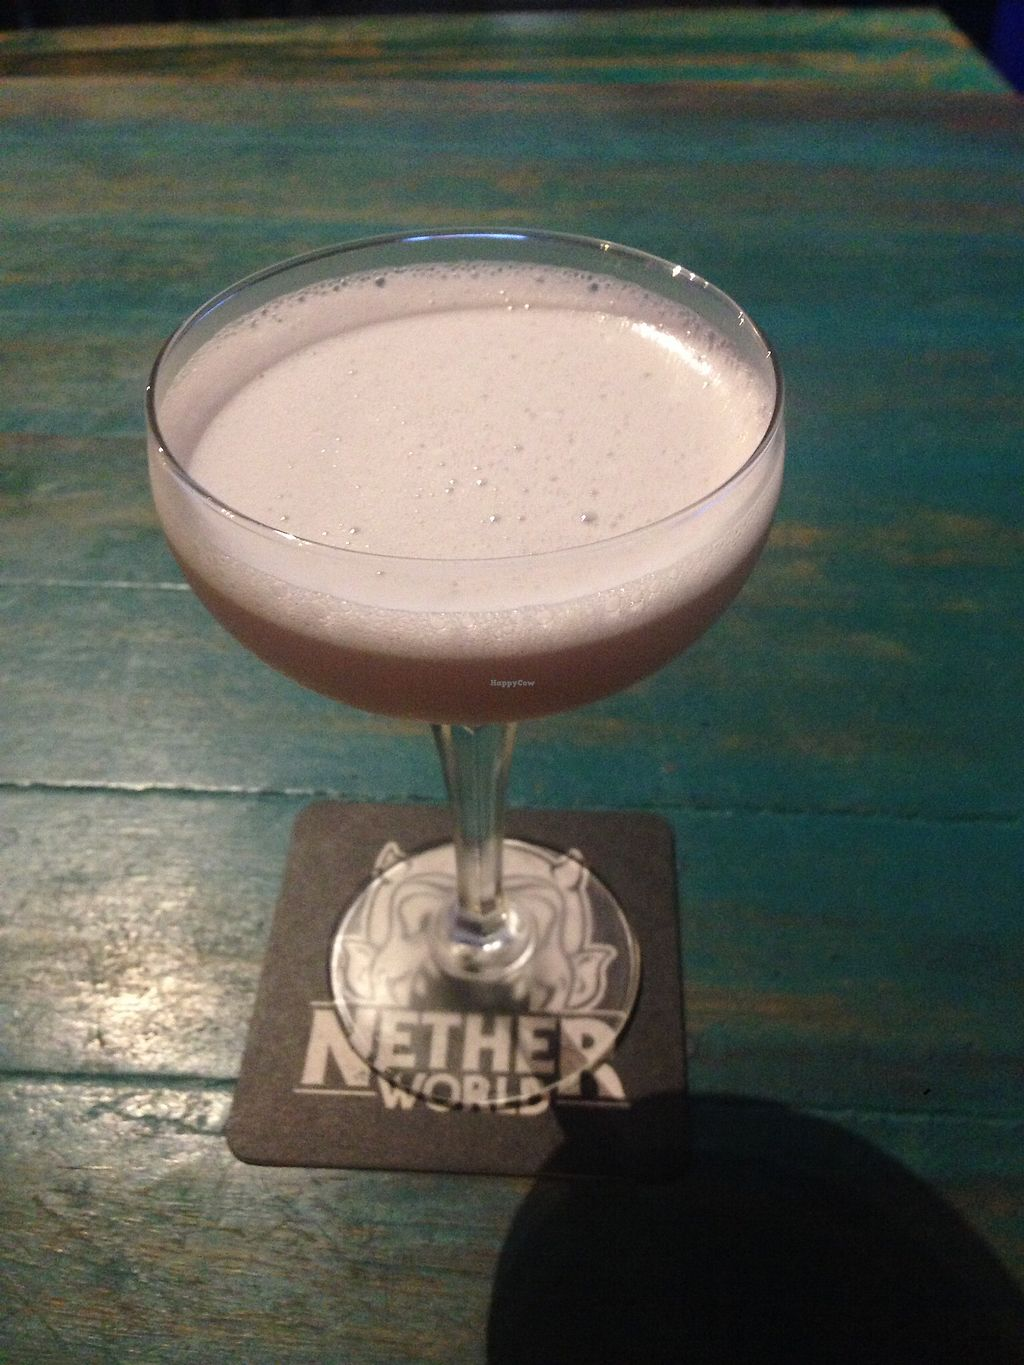 """Photo of Netherworld  by <a href=""""/members/profile/NirvanaRoseWilliams"""">NirvanaRoseWilliams</a> <br/>Vegan cocktail with aquafaba <br/> June 24, 2017  - <a href='/contact/abuse/image/86165/272783'>Report</a>"""